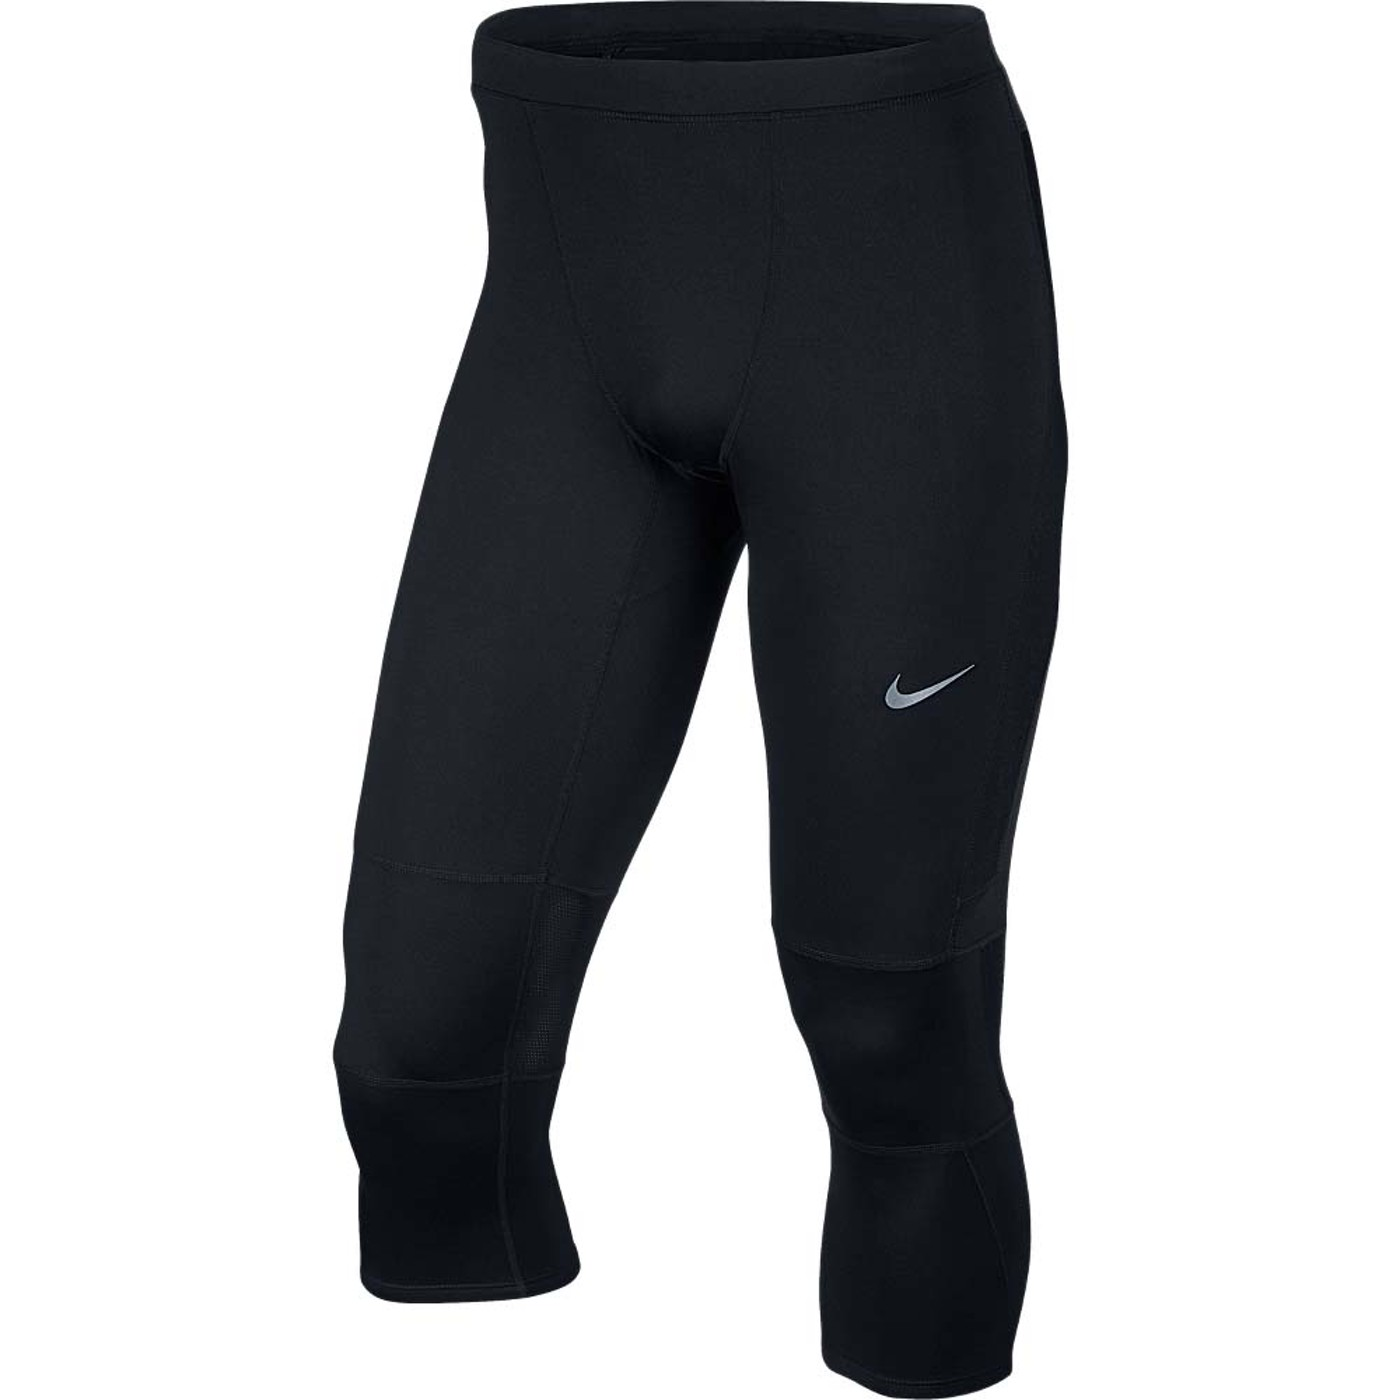 NIKE Tight DF ESSENTIAL 3/4 - Herren